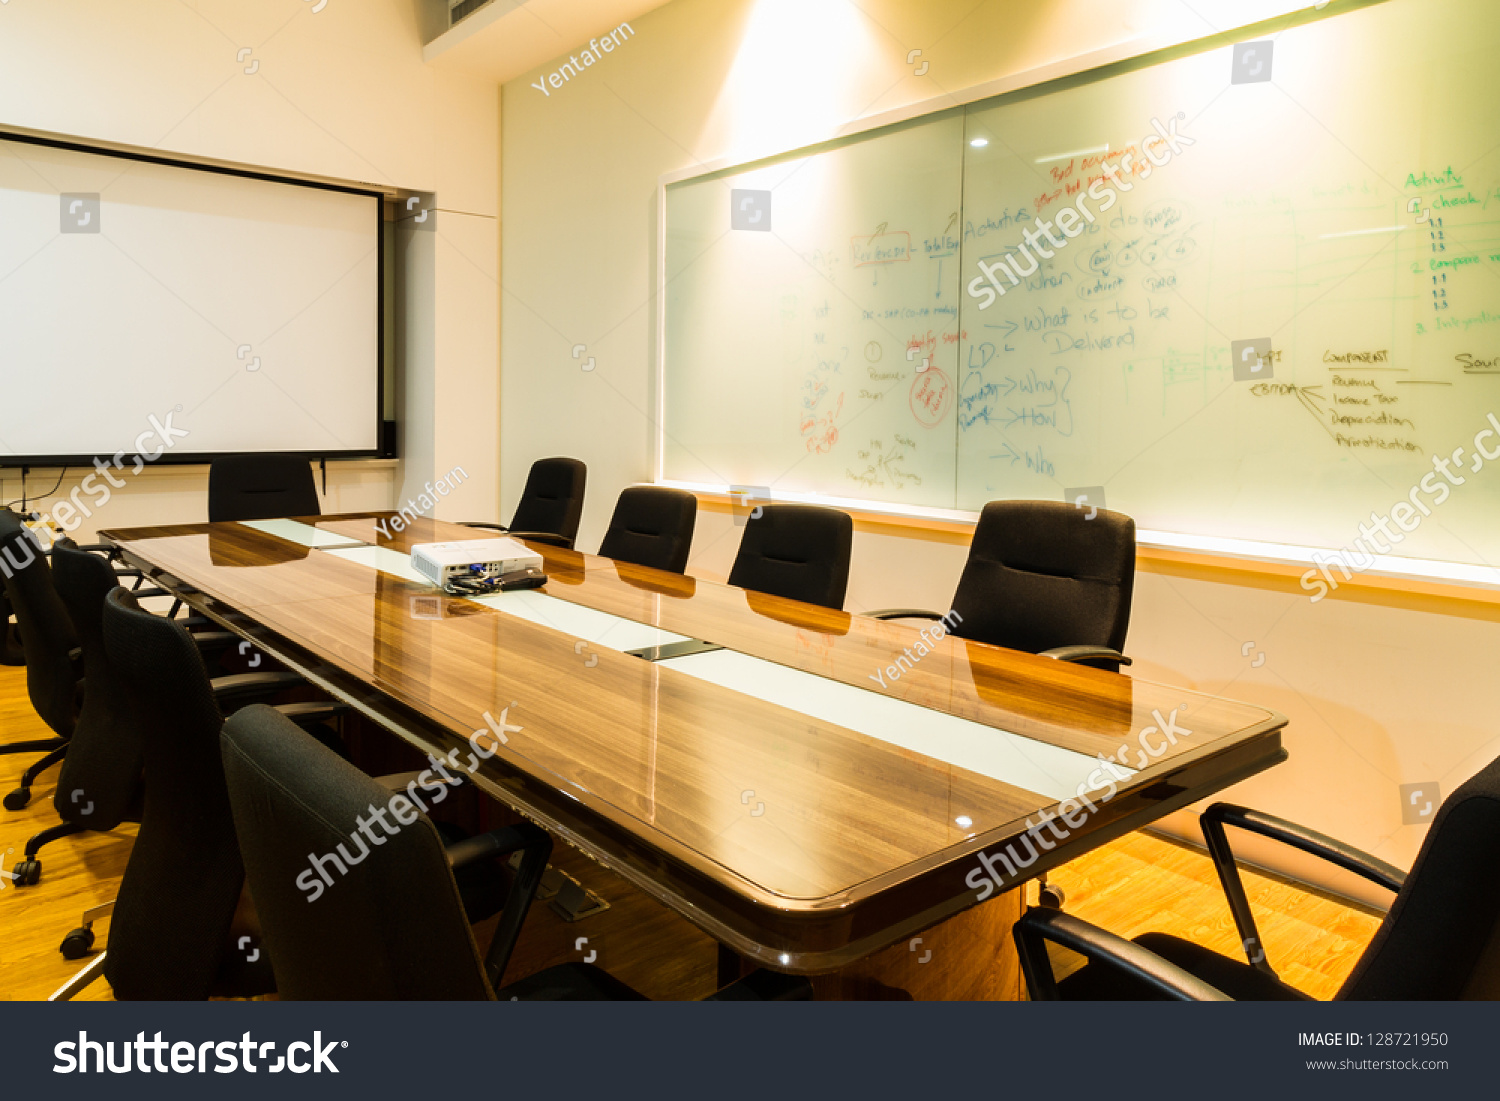 board room meeting The commission on asian pacific american affairs will be holding public board meetings on the following dates please check the proposed agenda for times of public comment.